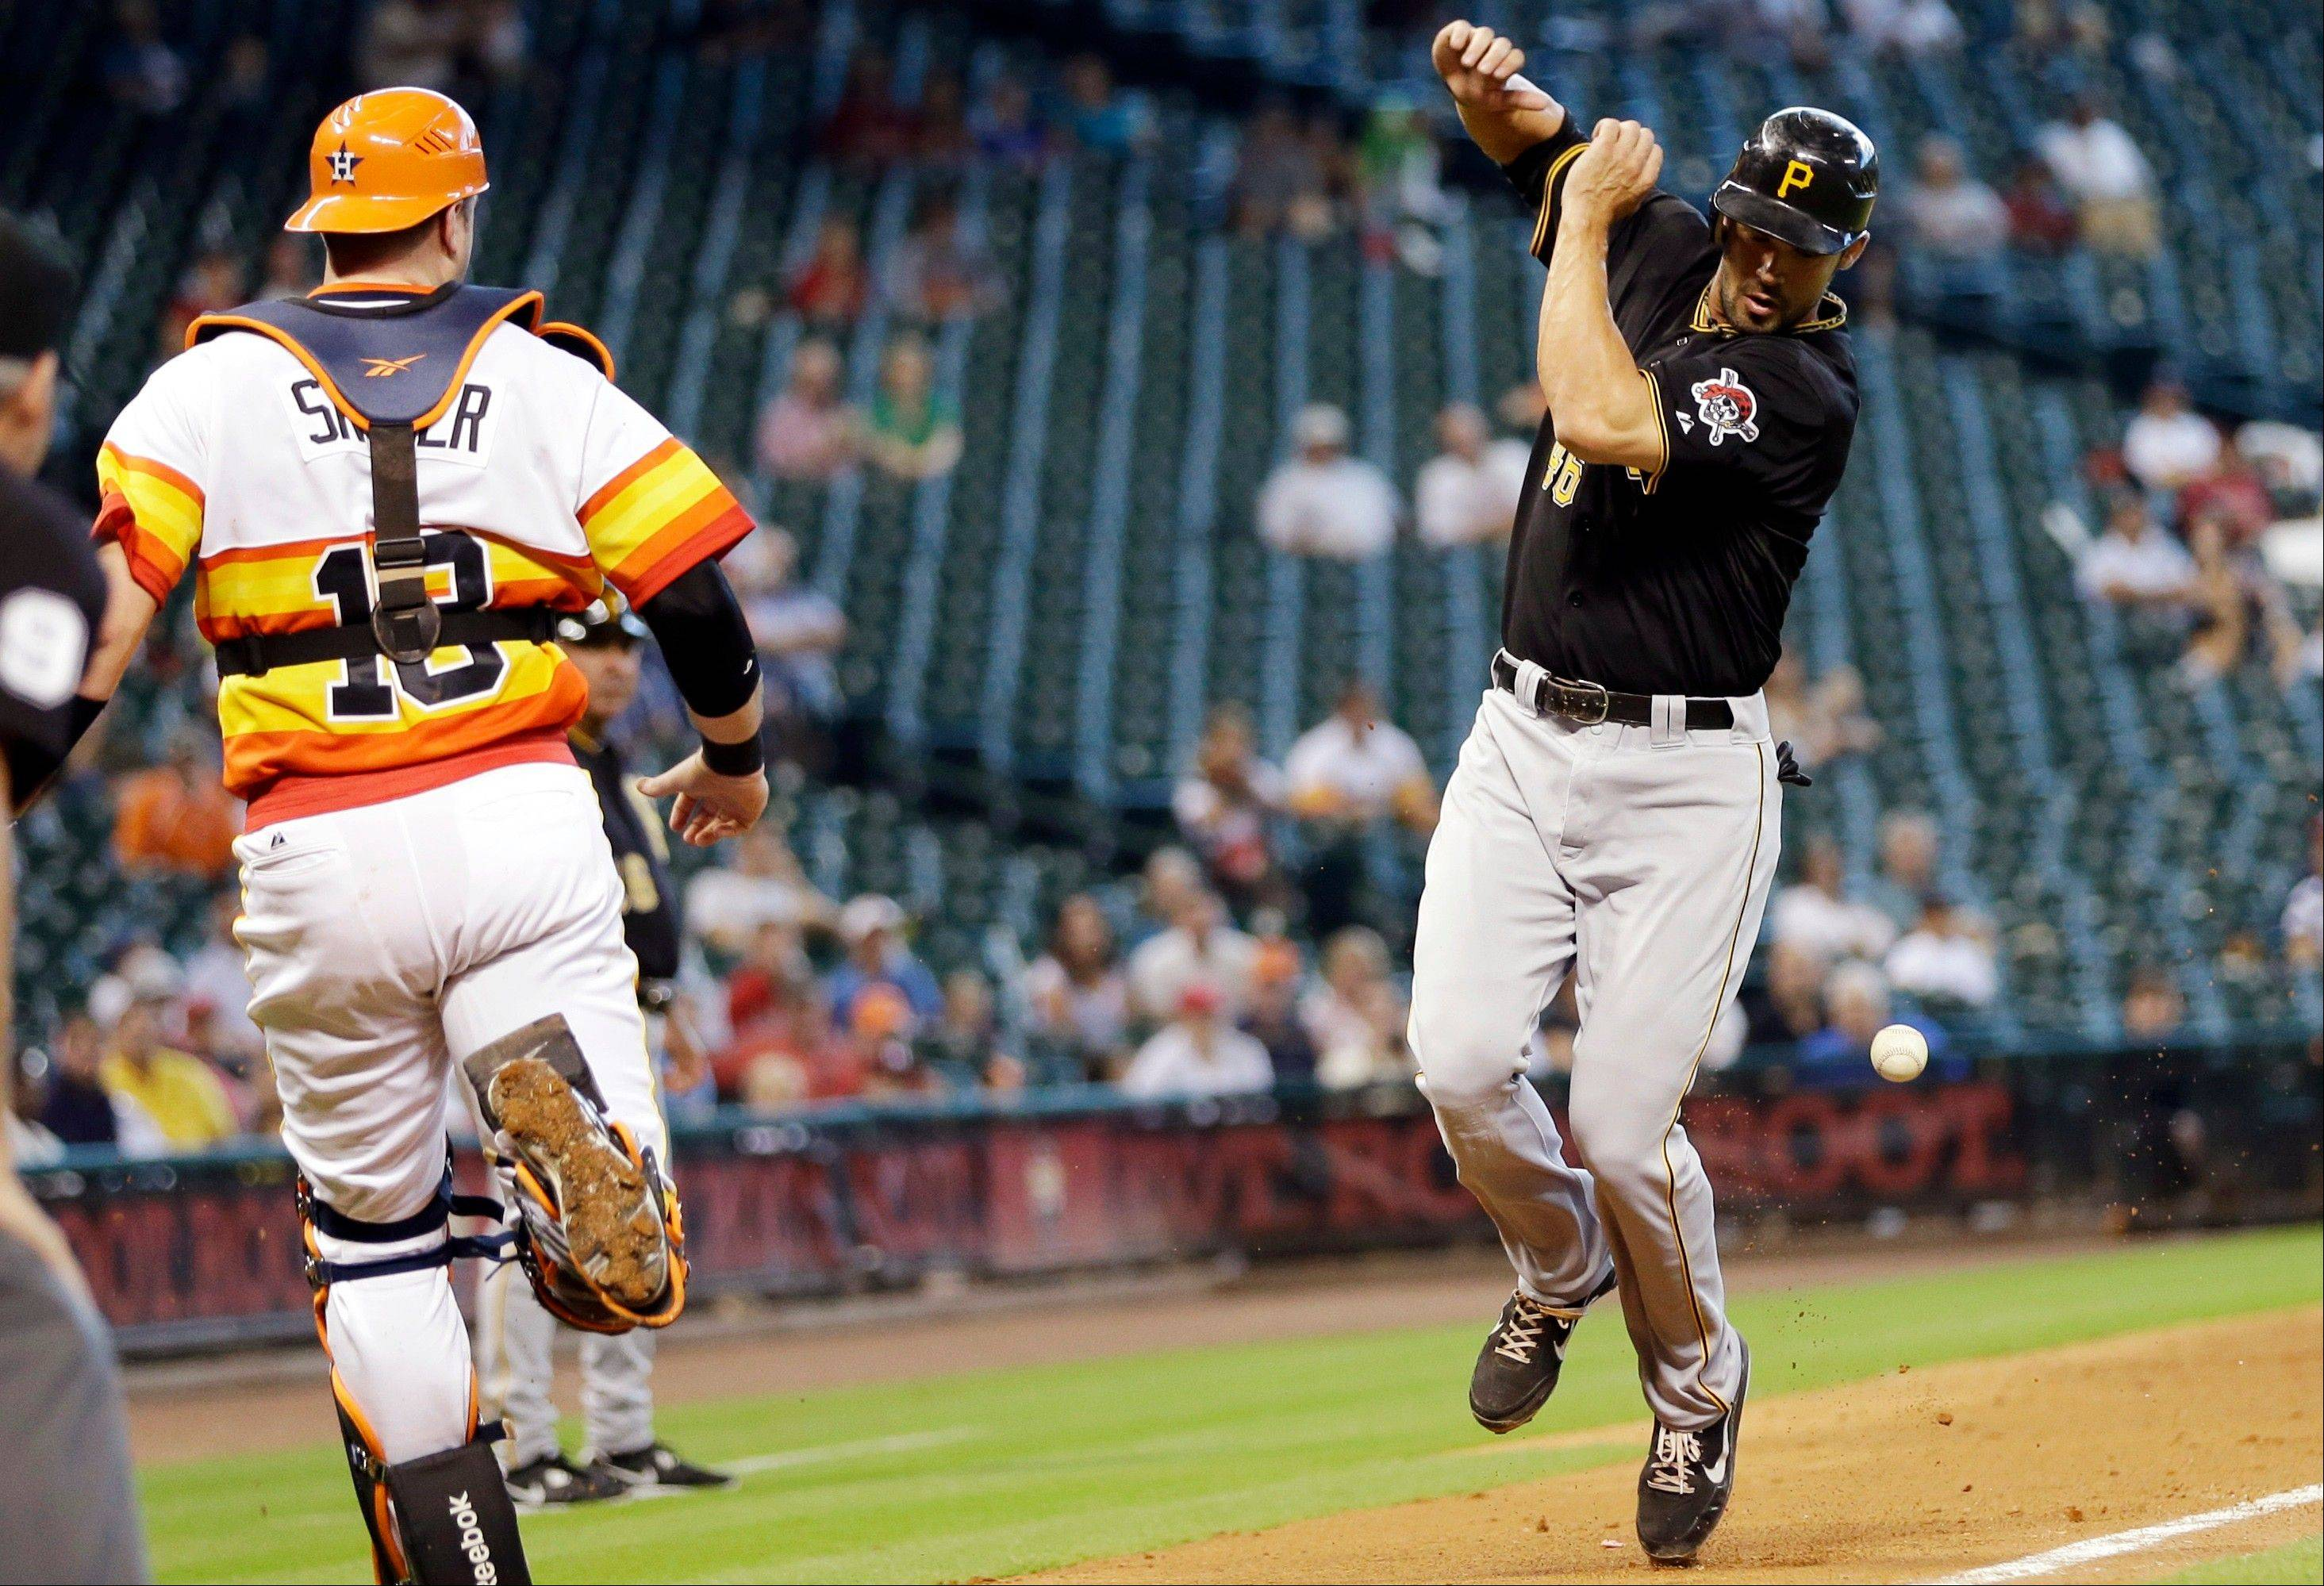 Pittsburgh�s Garrett Jones avoids being hit by a foul ball hit by pitcher A.J. Burnett as Astros catcher Chris Snyder runs down the third base line during the fourth inning Sunday in Houston.